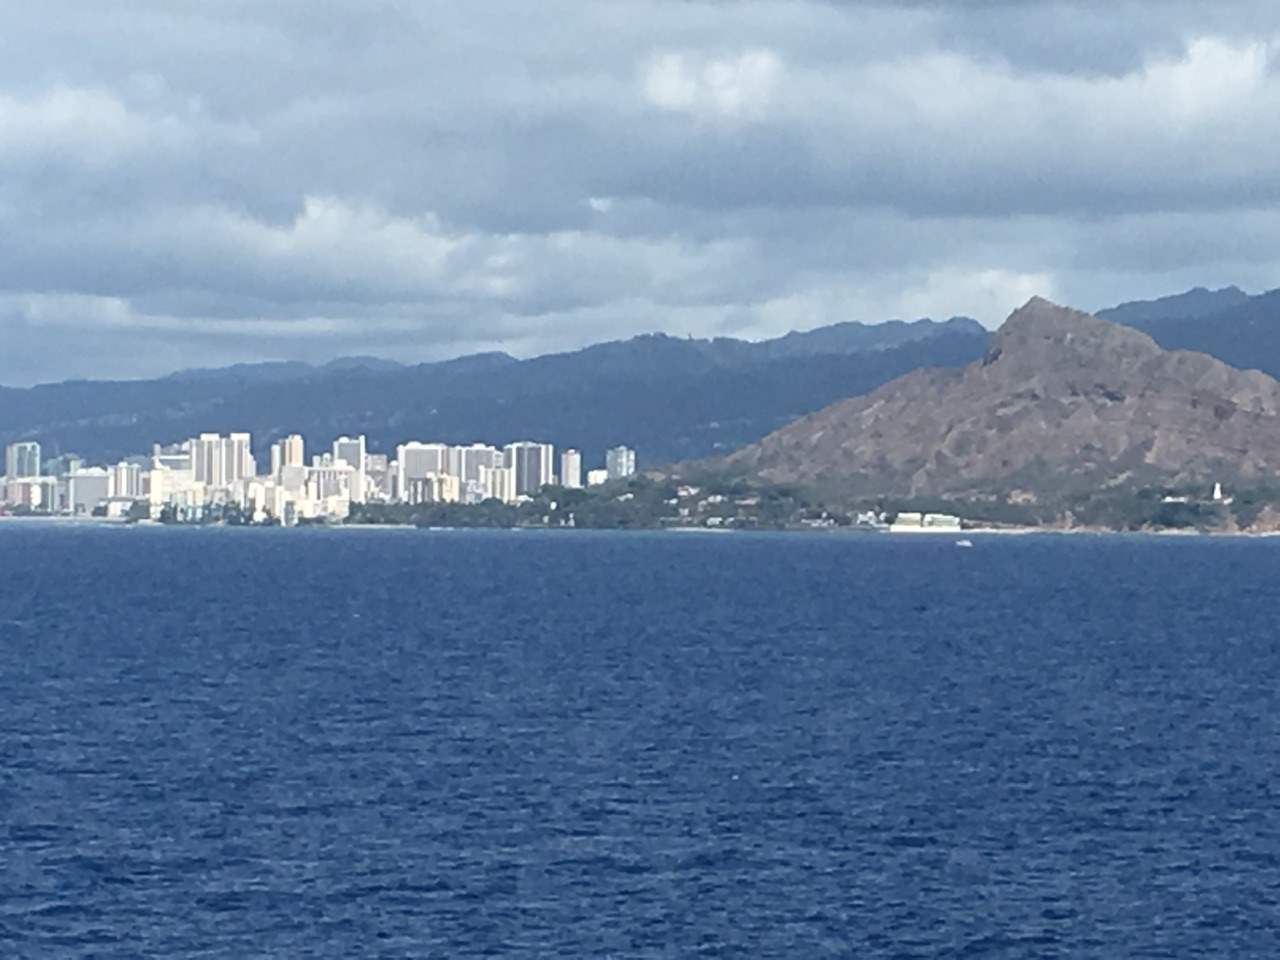 Approaching Honolulu